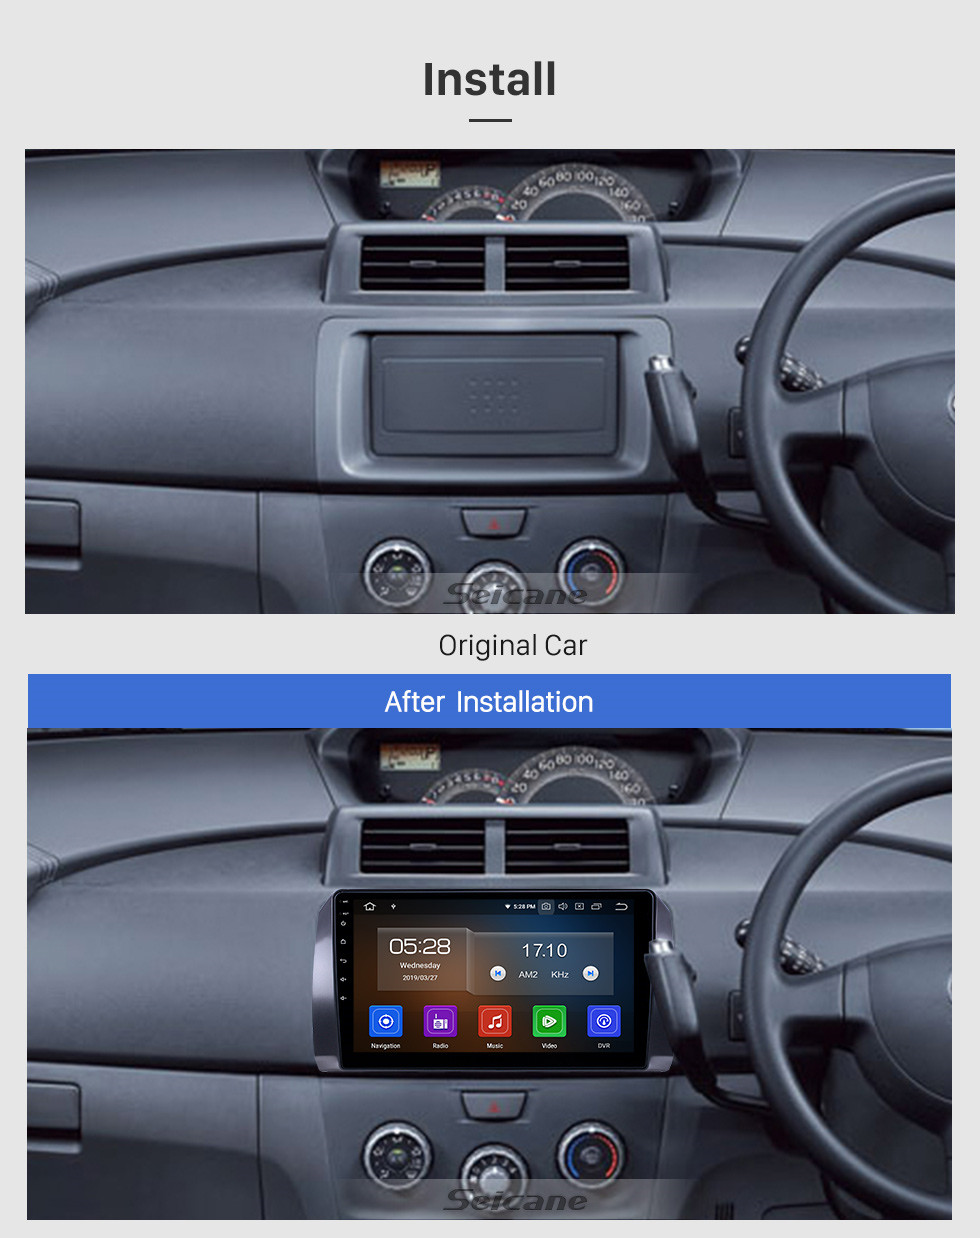 Seicane 10,1 Zoll 2006 Toyota B6 / 2008 Subaru DEX / 2005 Daihatsu WO Android 9.0 GPS Navigationsradio Bluetooth Touchscreen Carplay Unterstützung Mirror Link